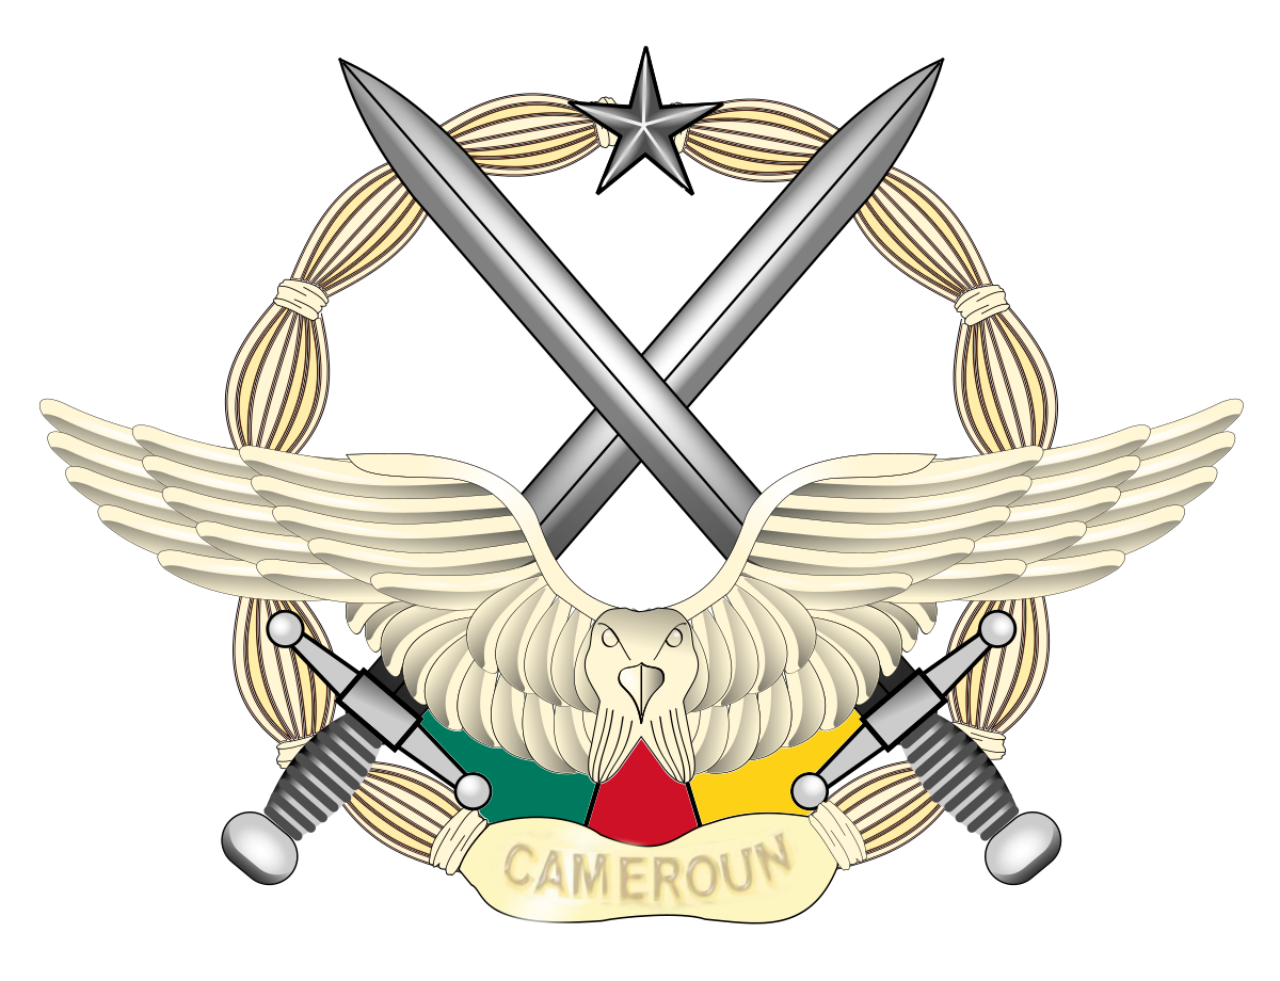 Career in Cameroon's Air Force